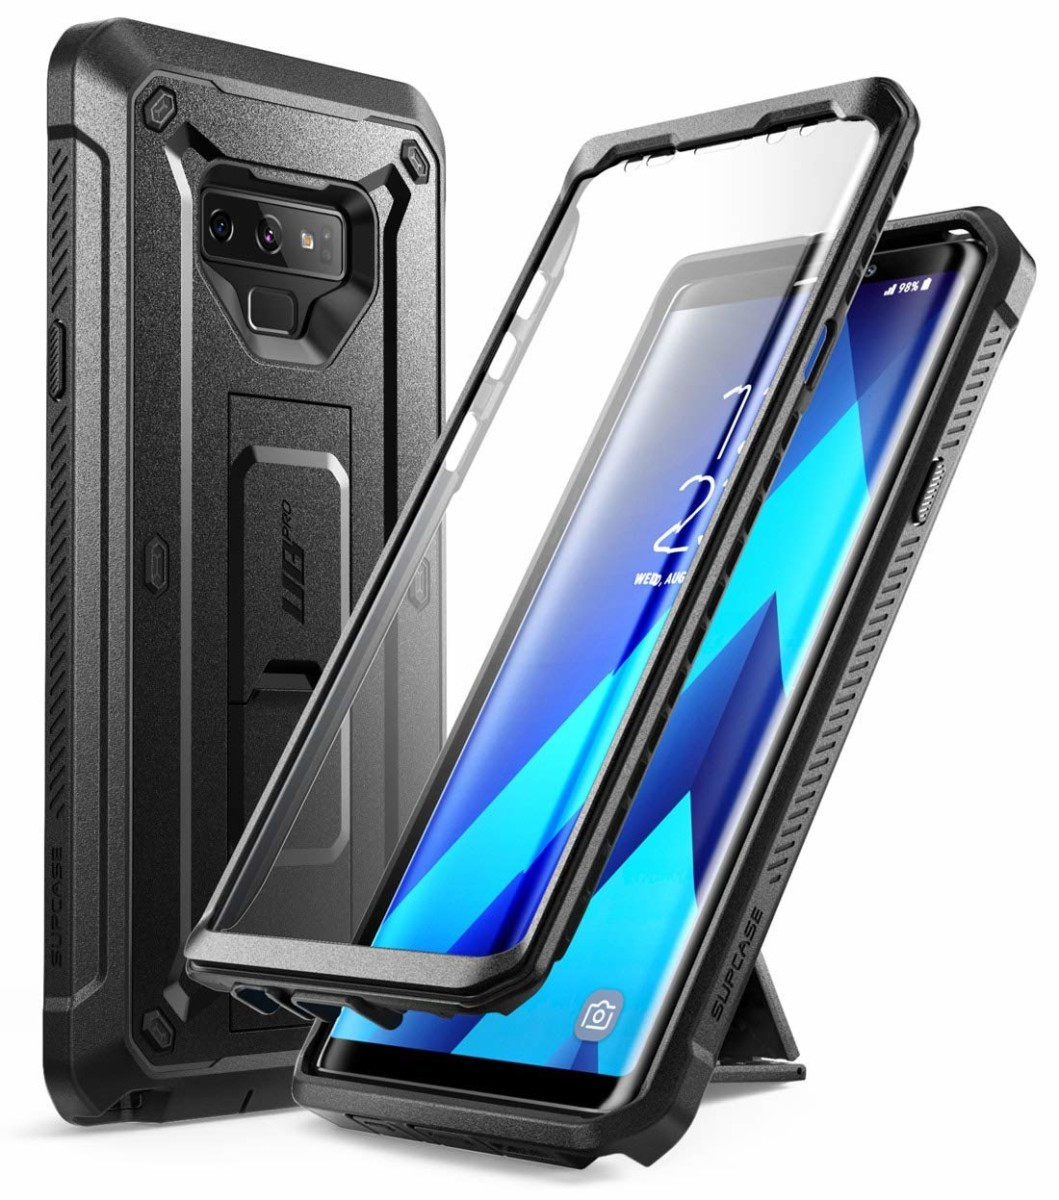 Best Samsung Galaxy Note 9 Cases To Buy In 2020